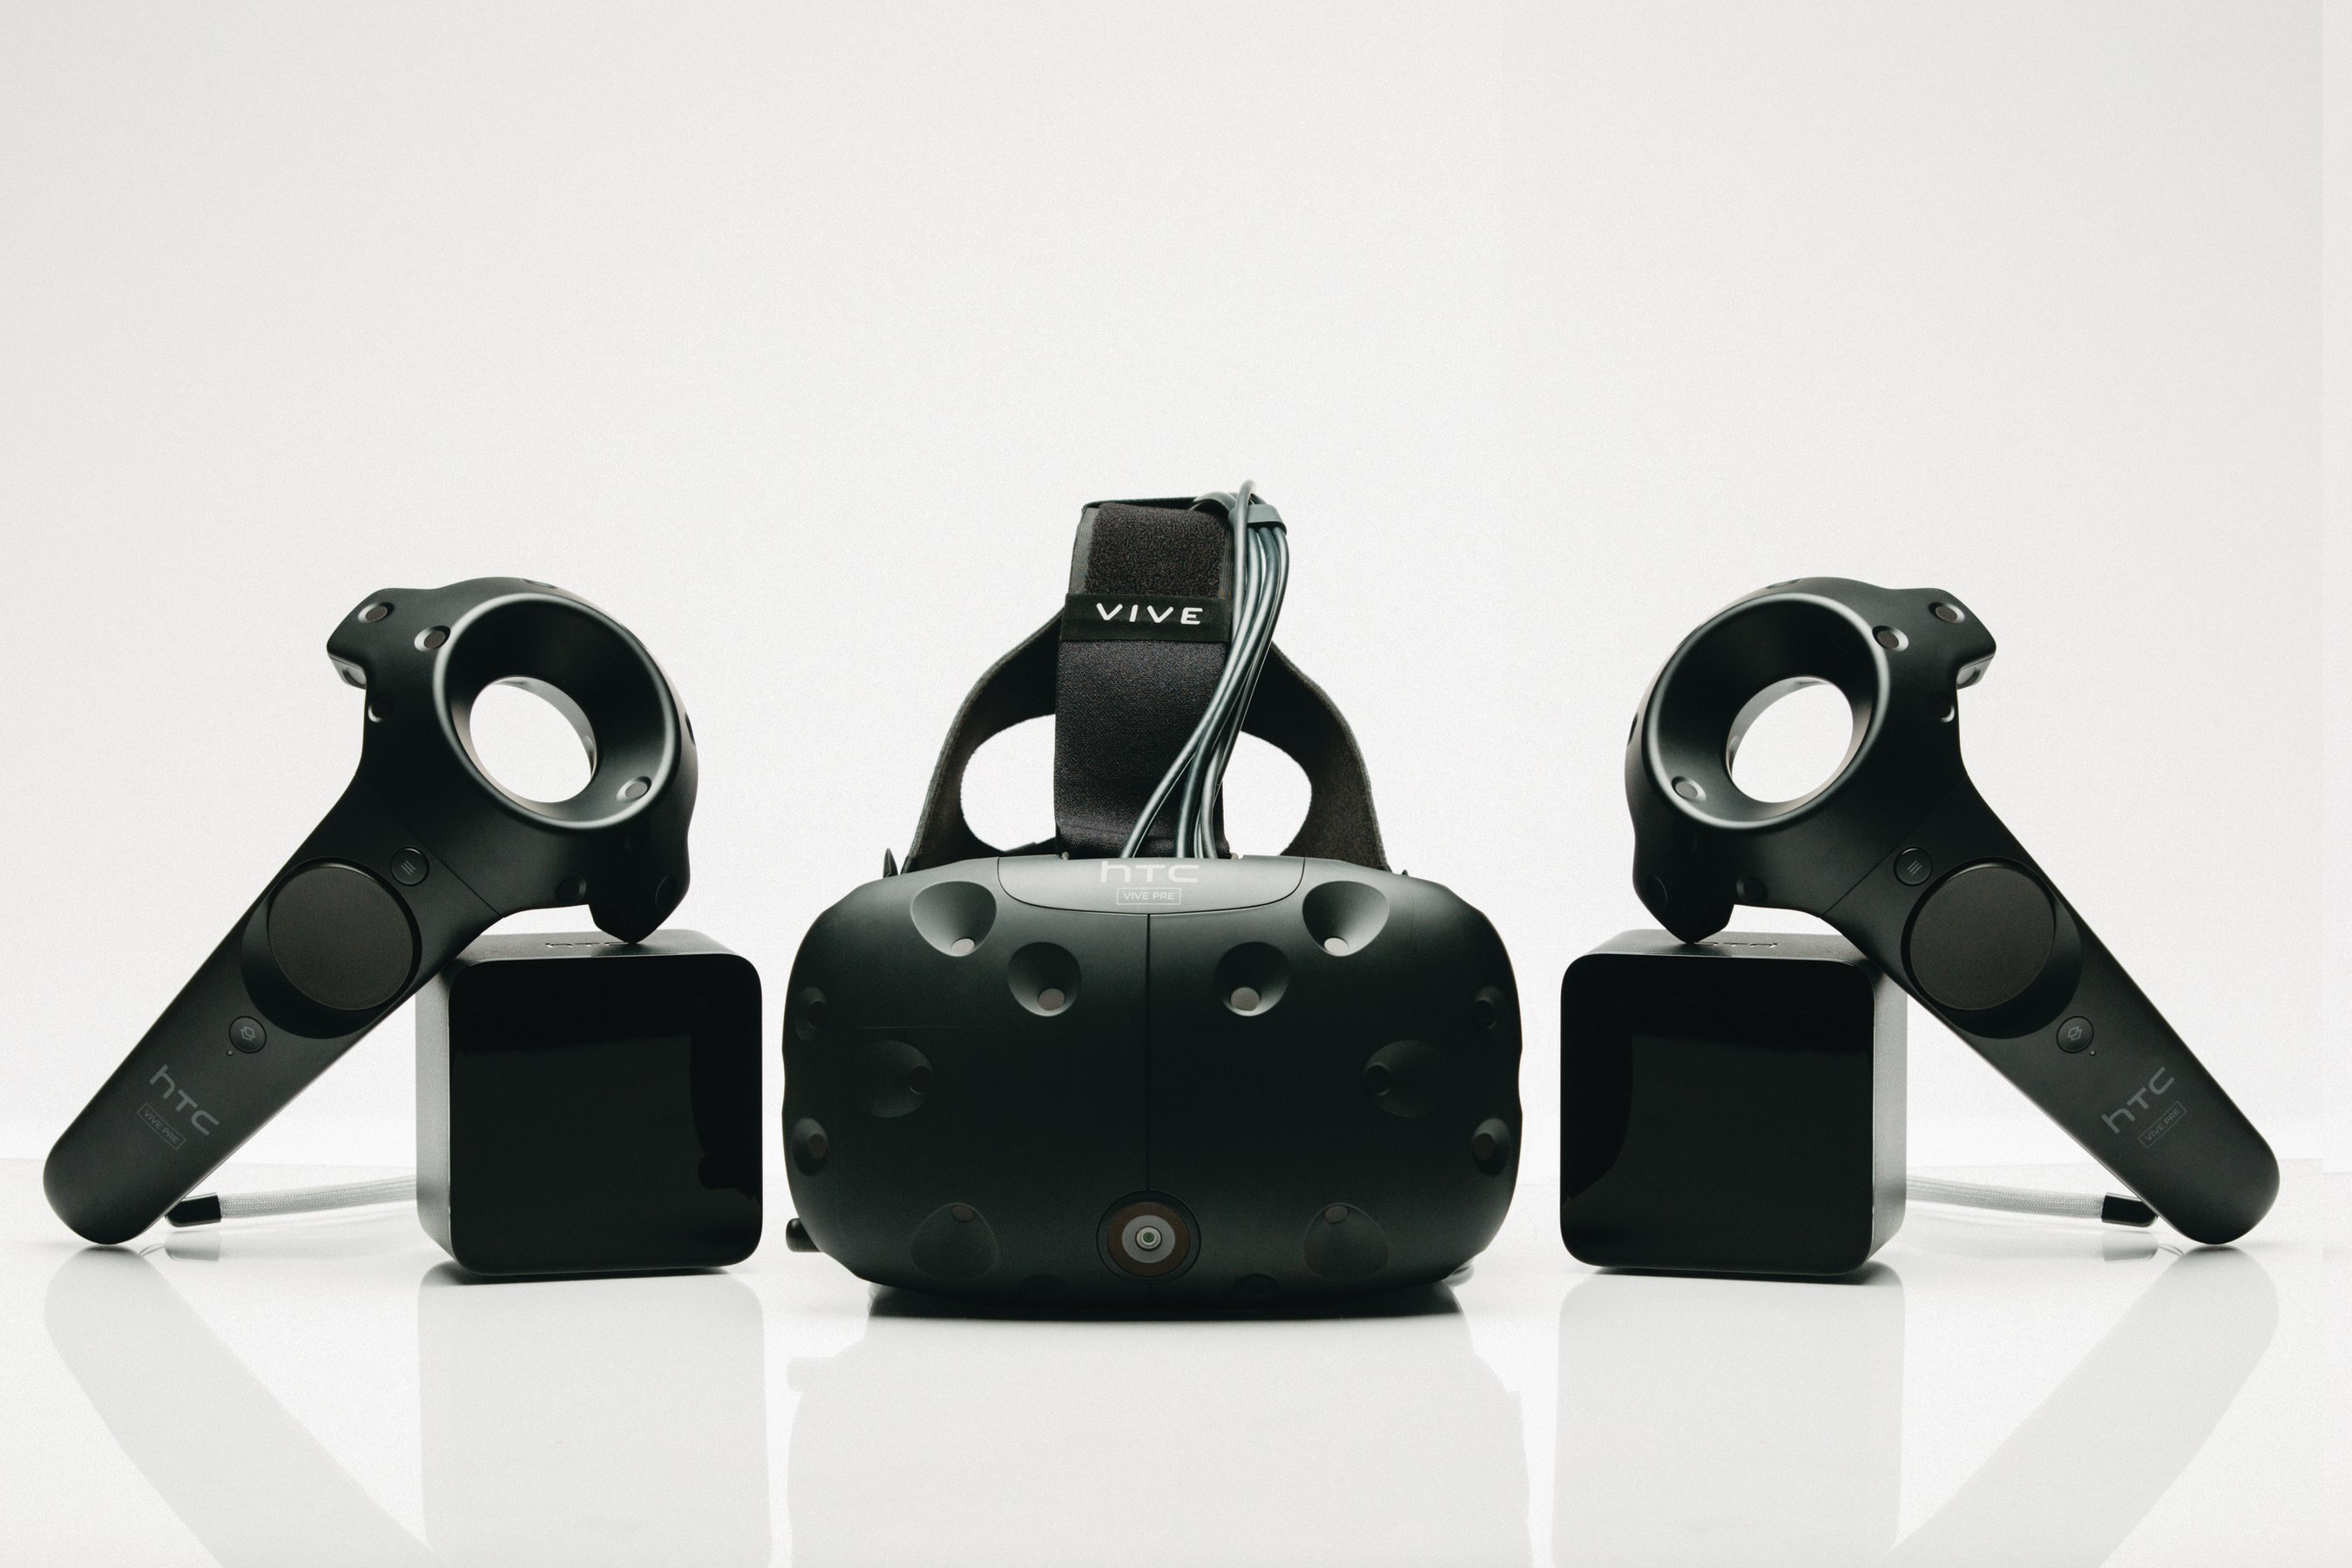 The second-generation developer edition of HTC's VR system, the Vive Pre, was the recipient of 14 awards